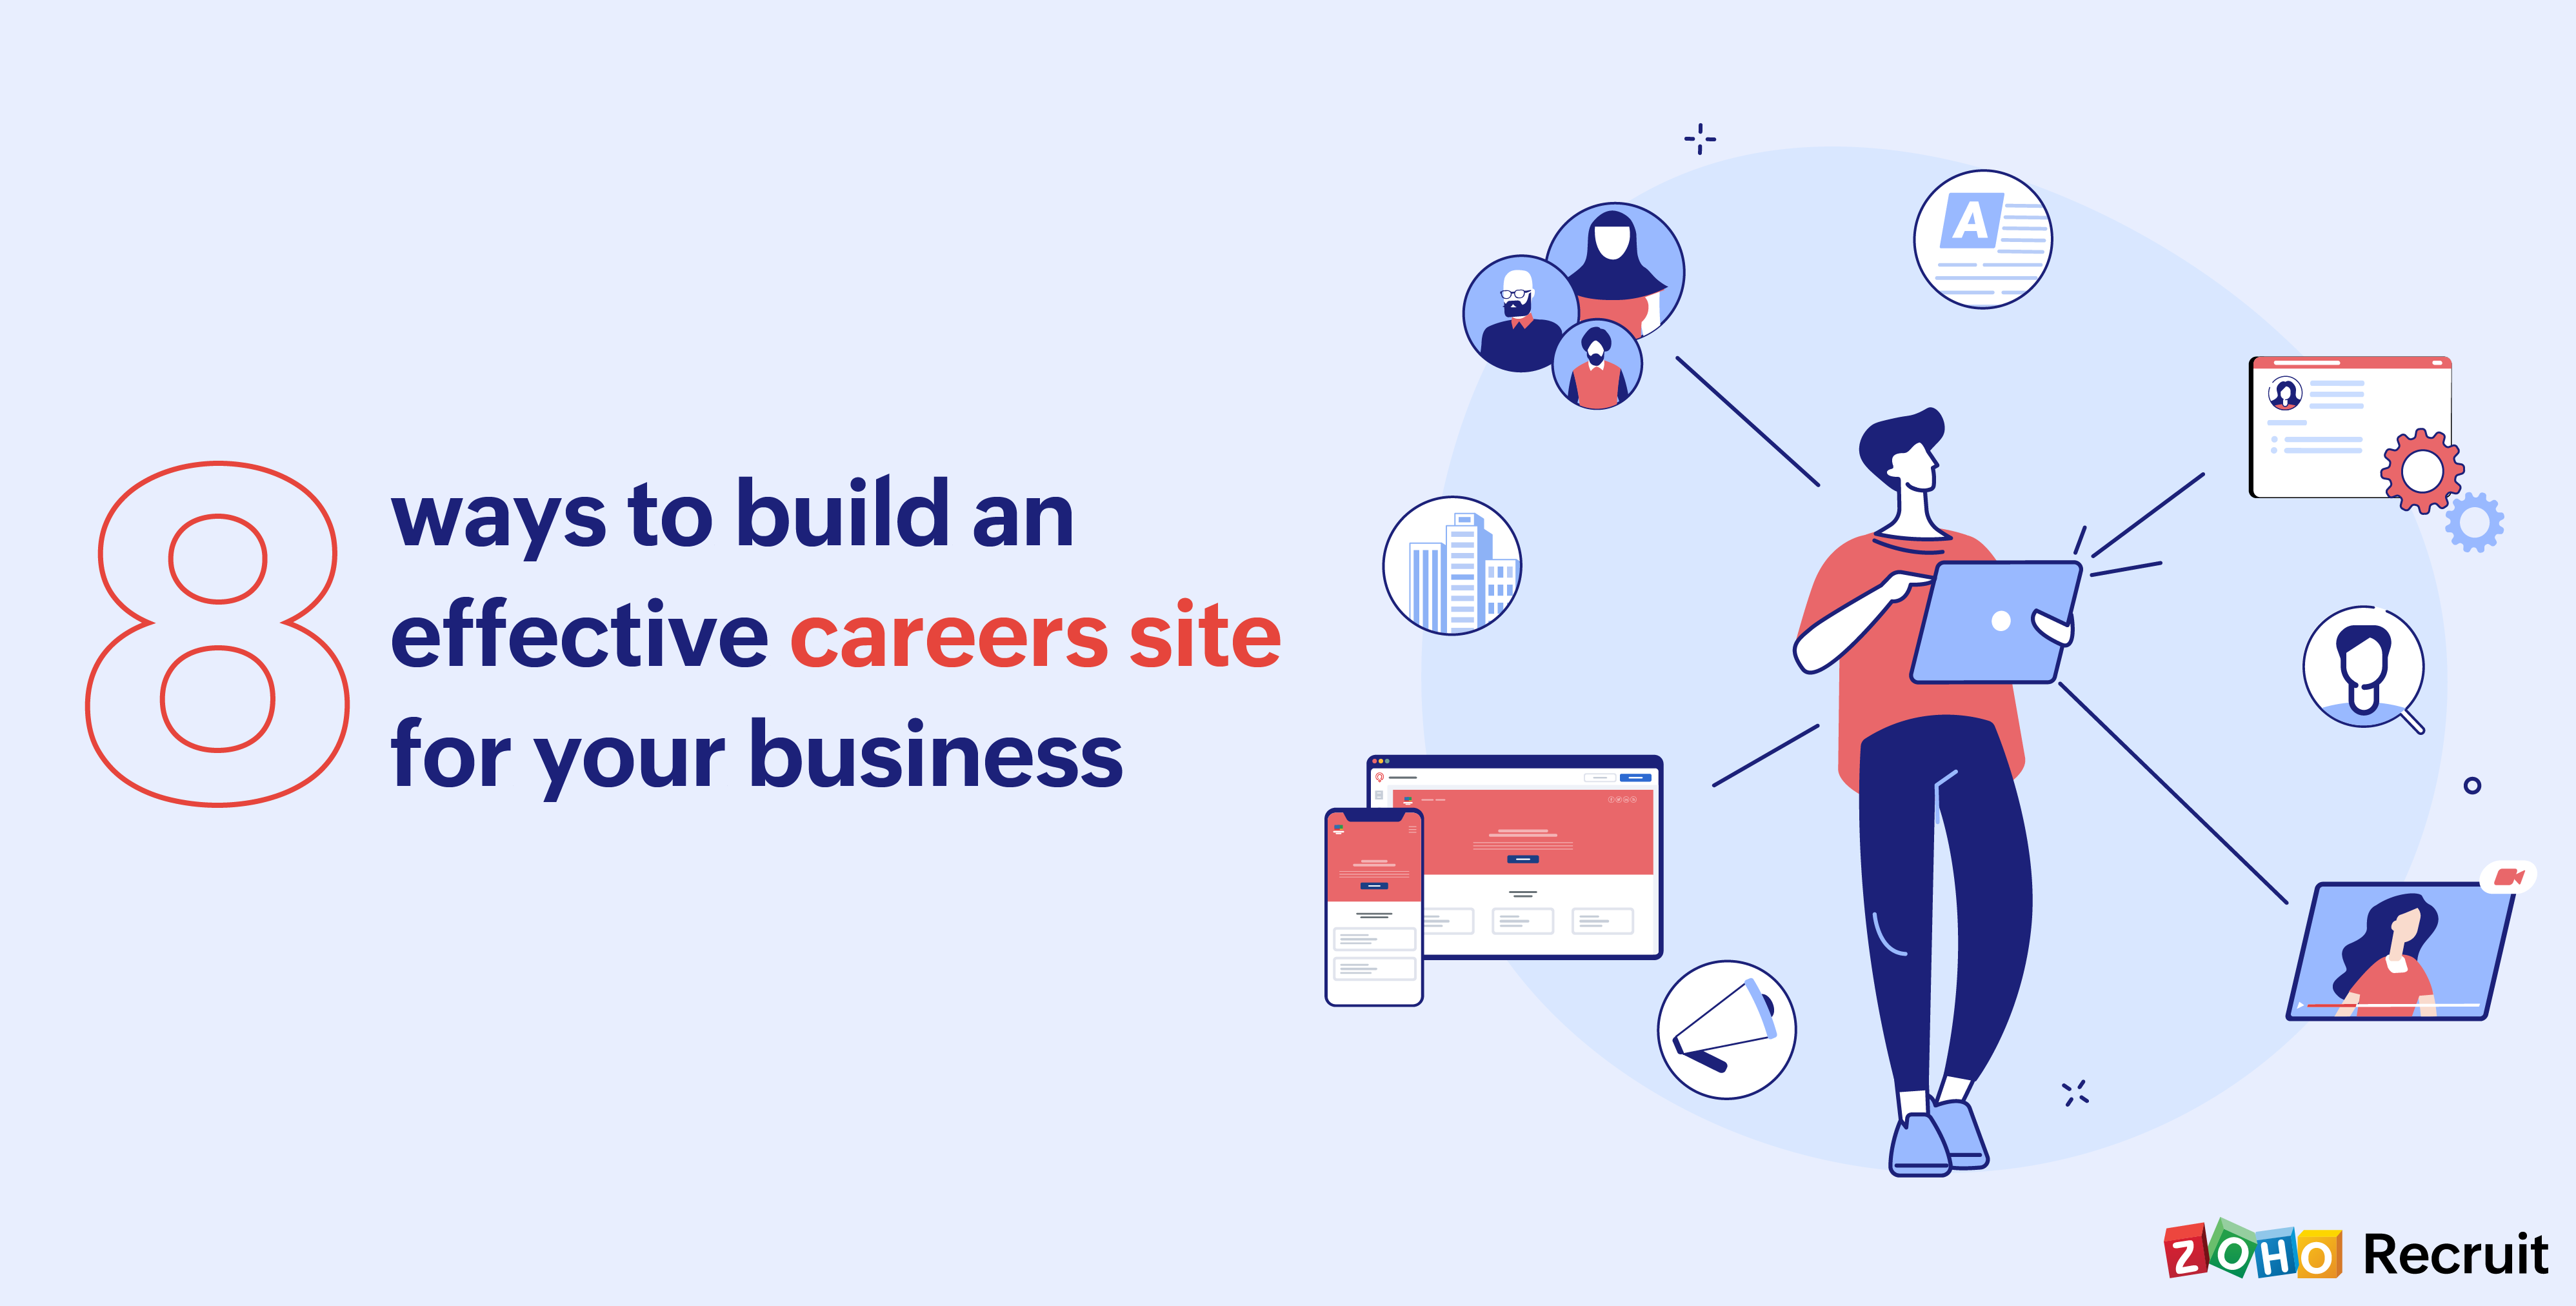 8 ways to build an effective careers site for your business